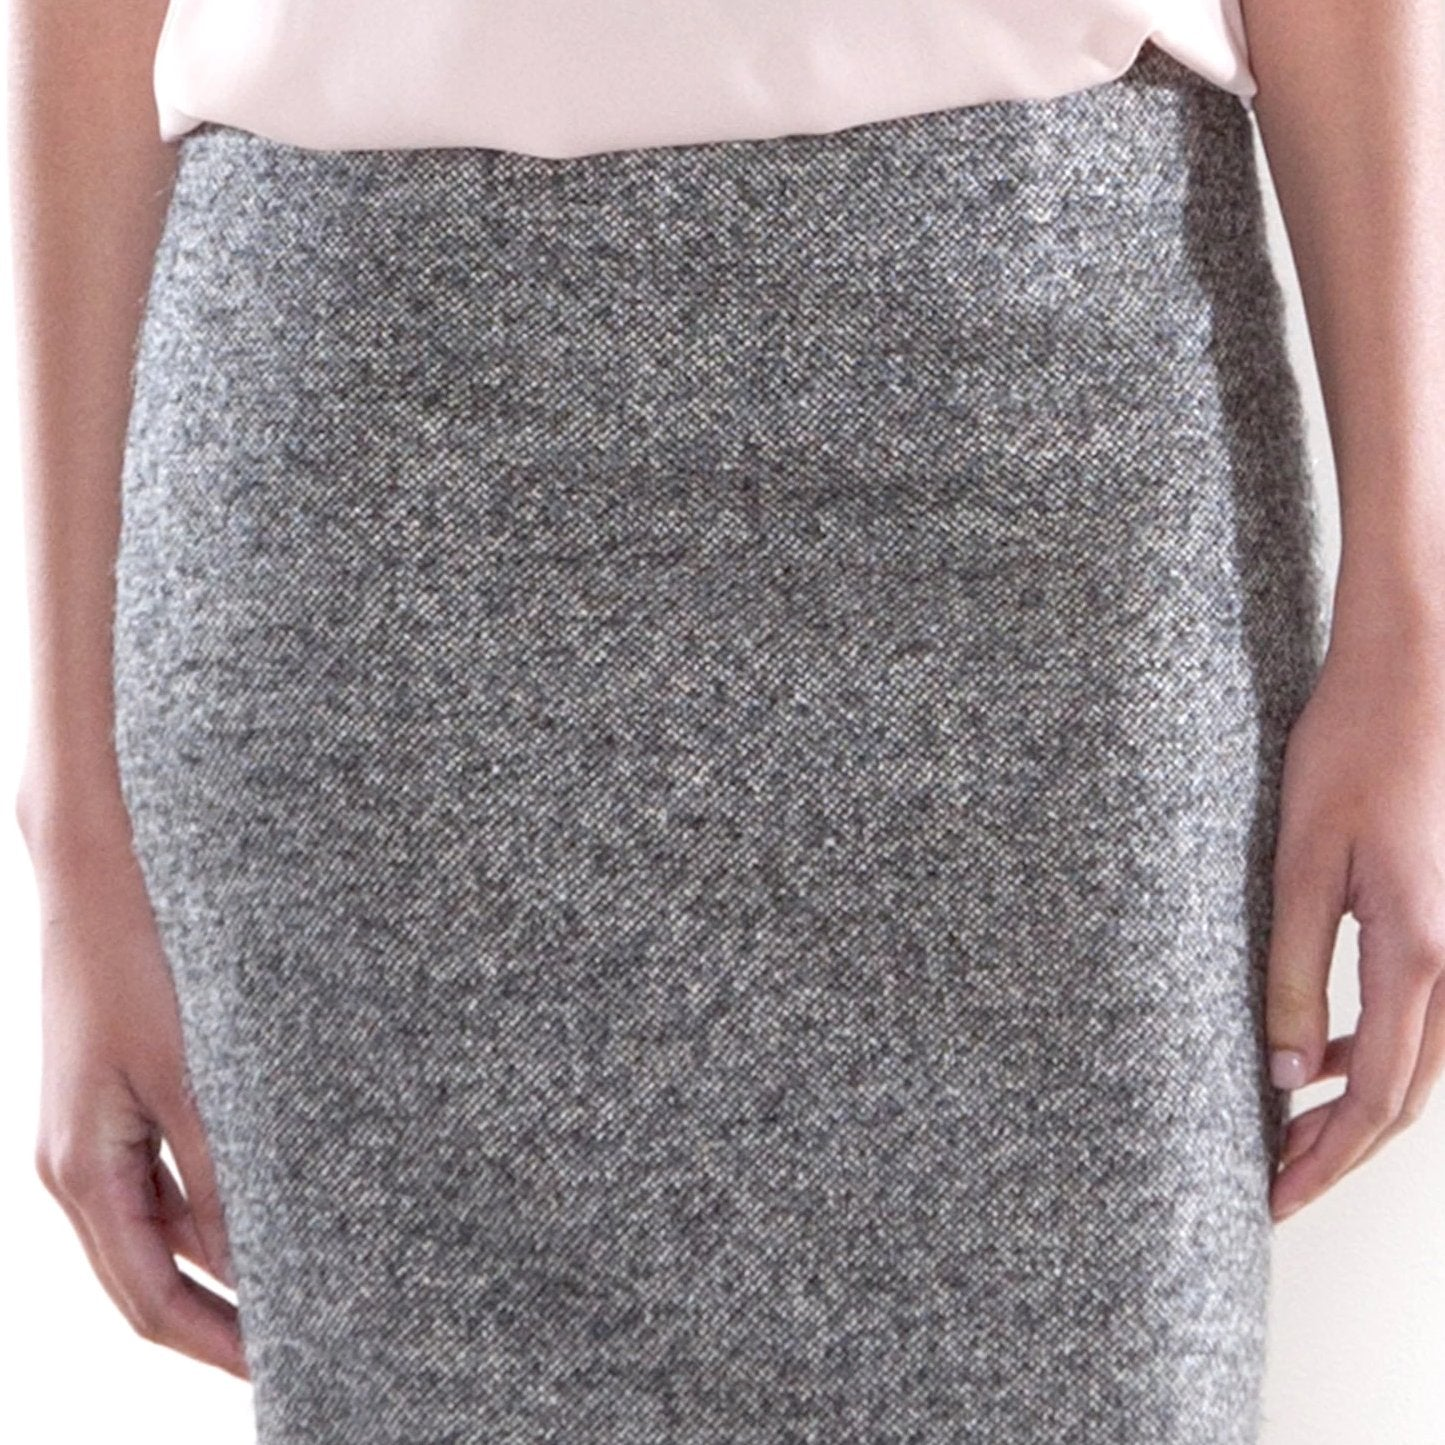 The French Tweed Skirt